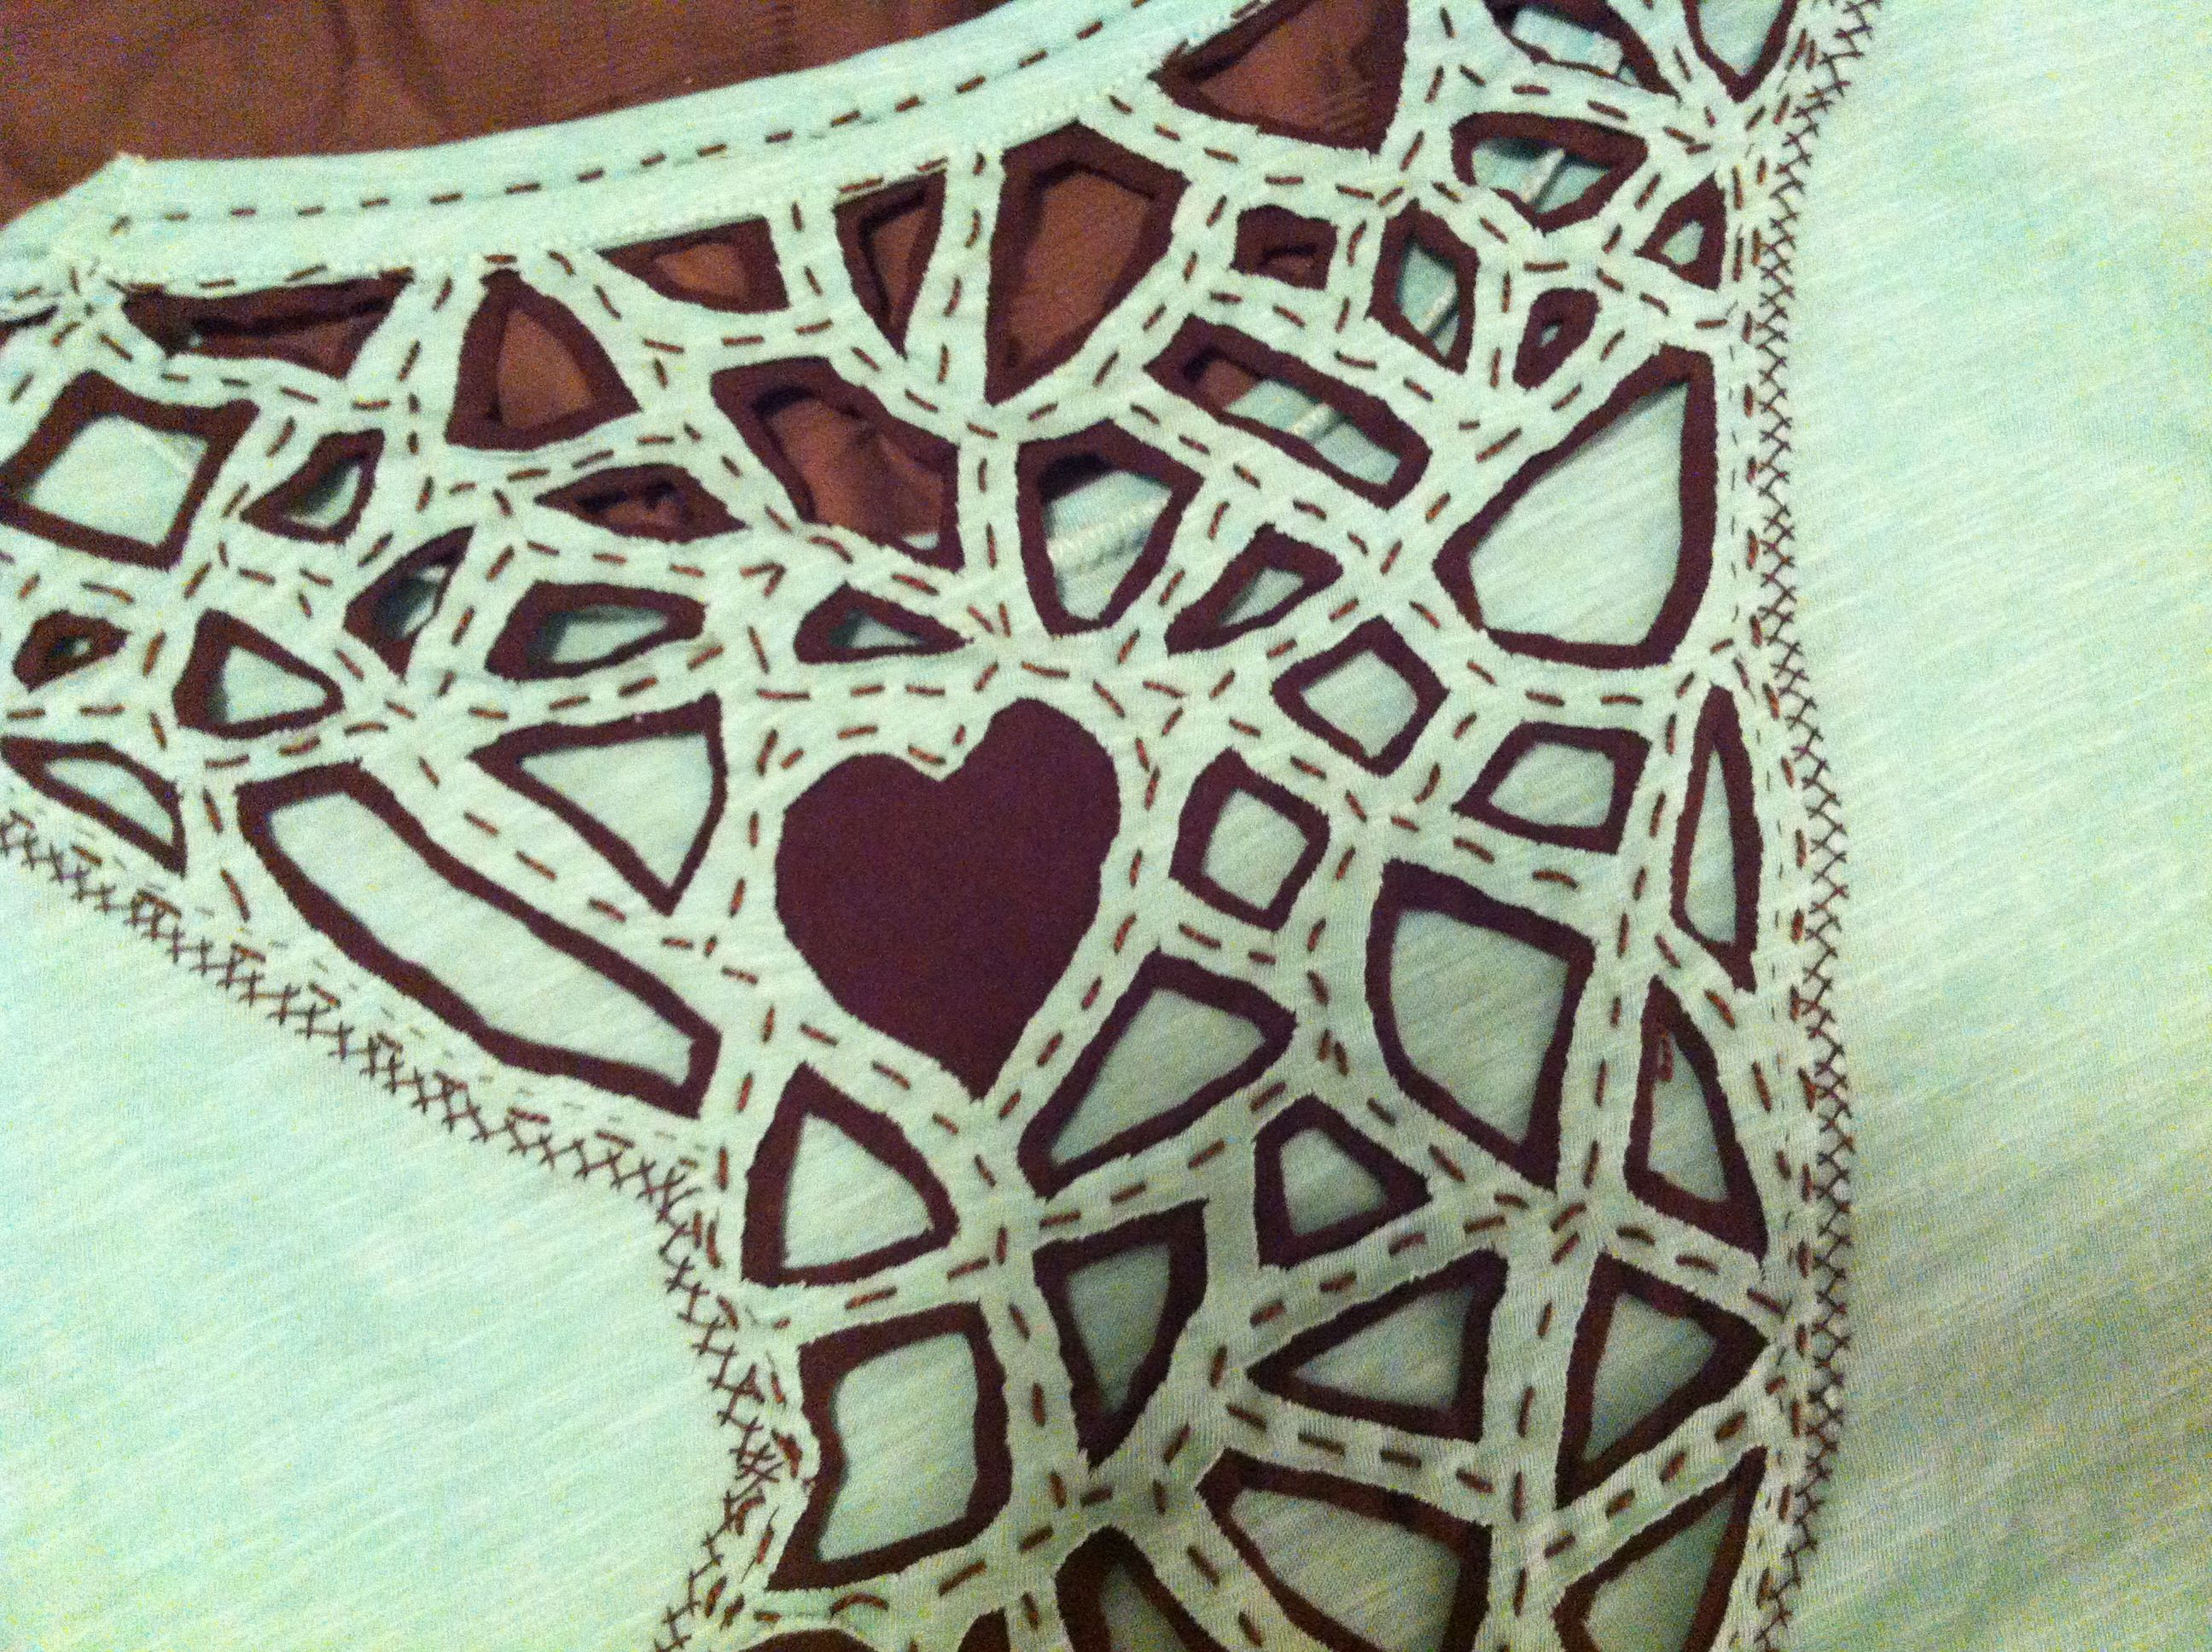 Converted cheap $5 T-shirt into a pc of art with cutwork / applique/ and embellishments!